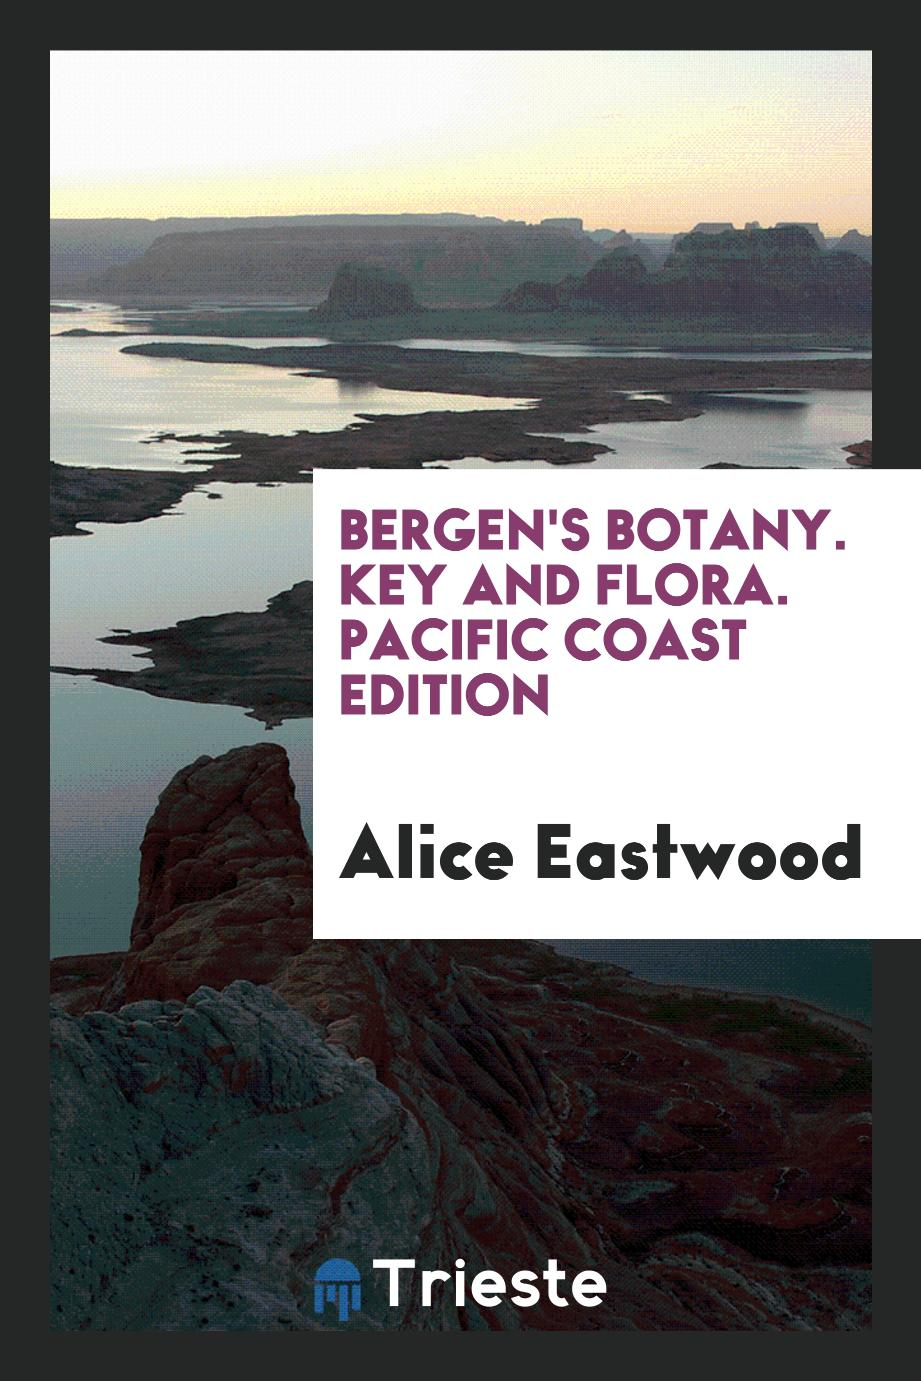 Bergen's Botany. Key and Flora. Pacific Coast Edition